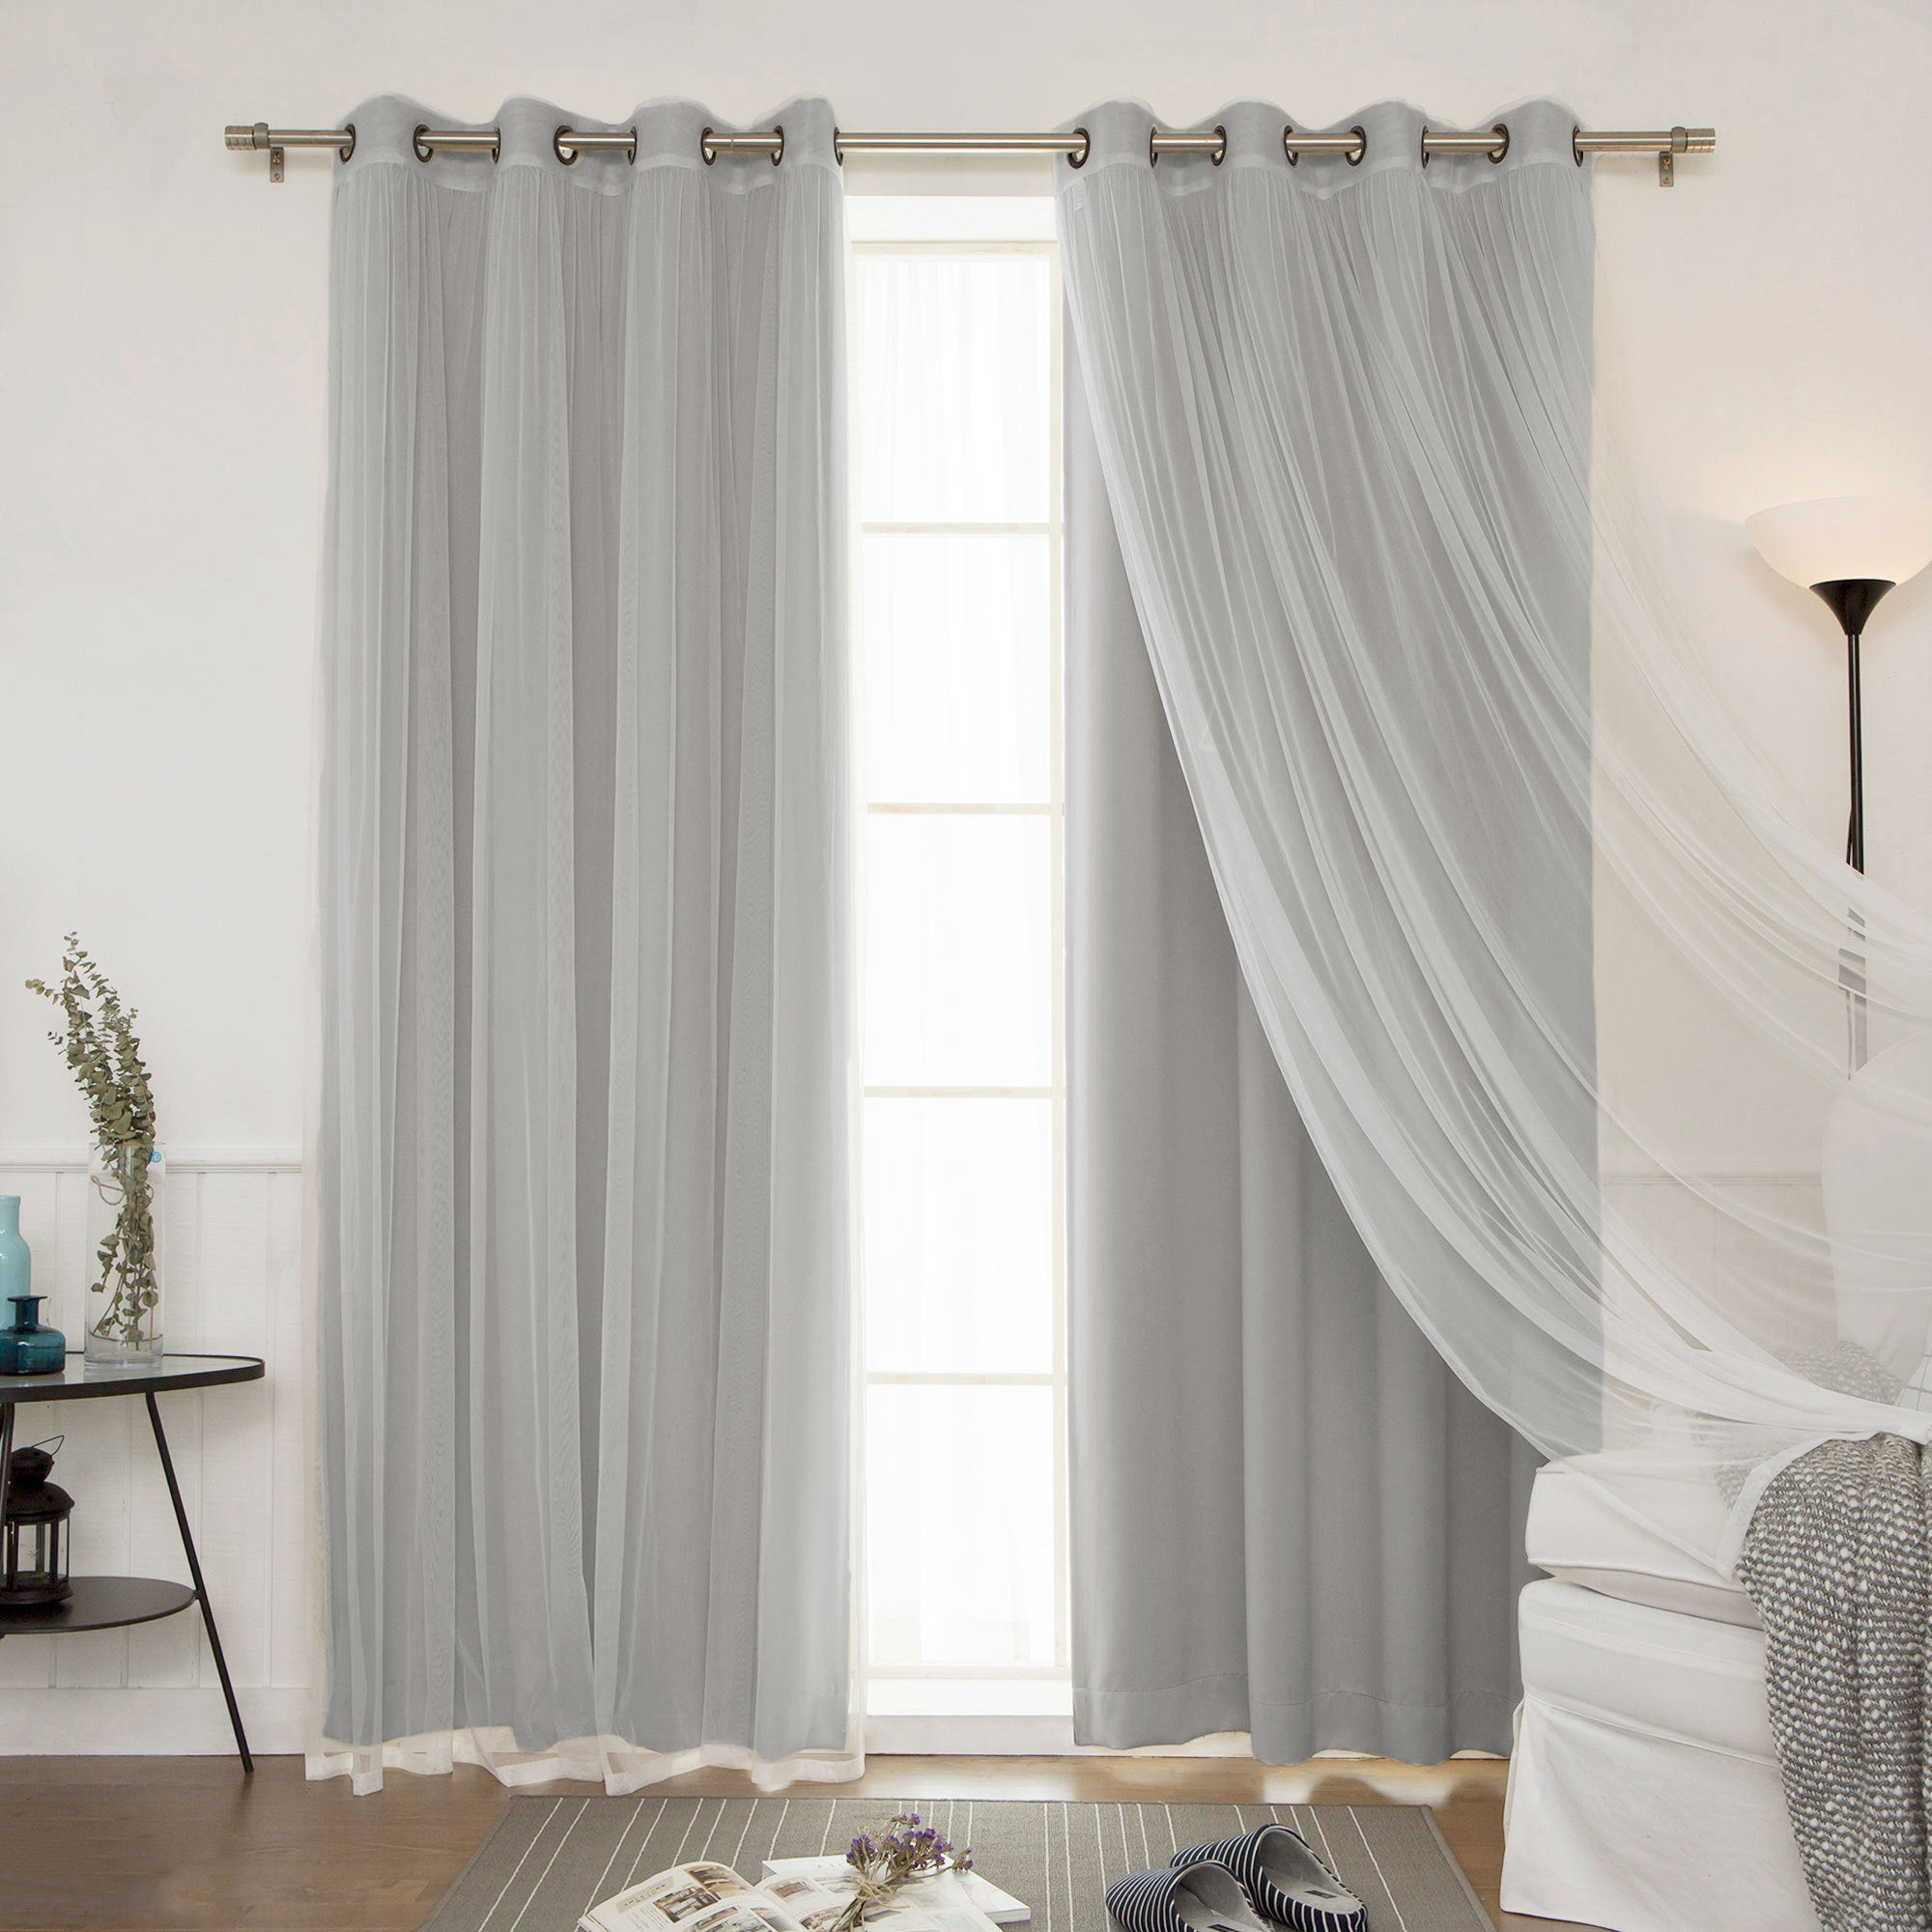 Mix And Match Blackout Blackout Curtains Panel Sets Regarding Most Recent Aurora Home Mix And Match Blackout Blackout Curtains Panel Set (4 Piece) (Gallery 1 of 20)